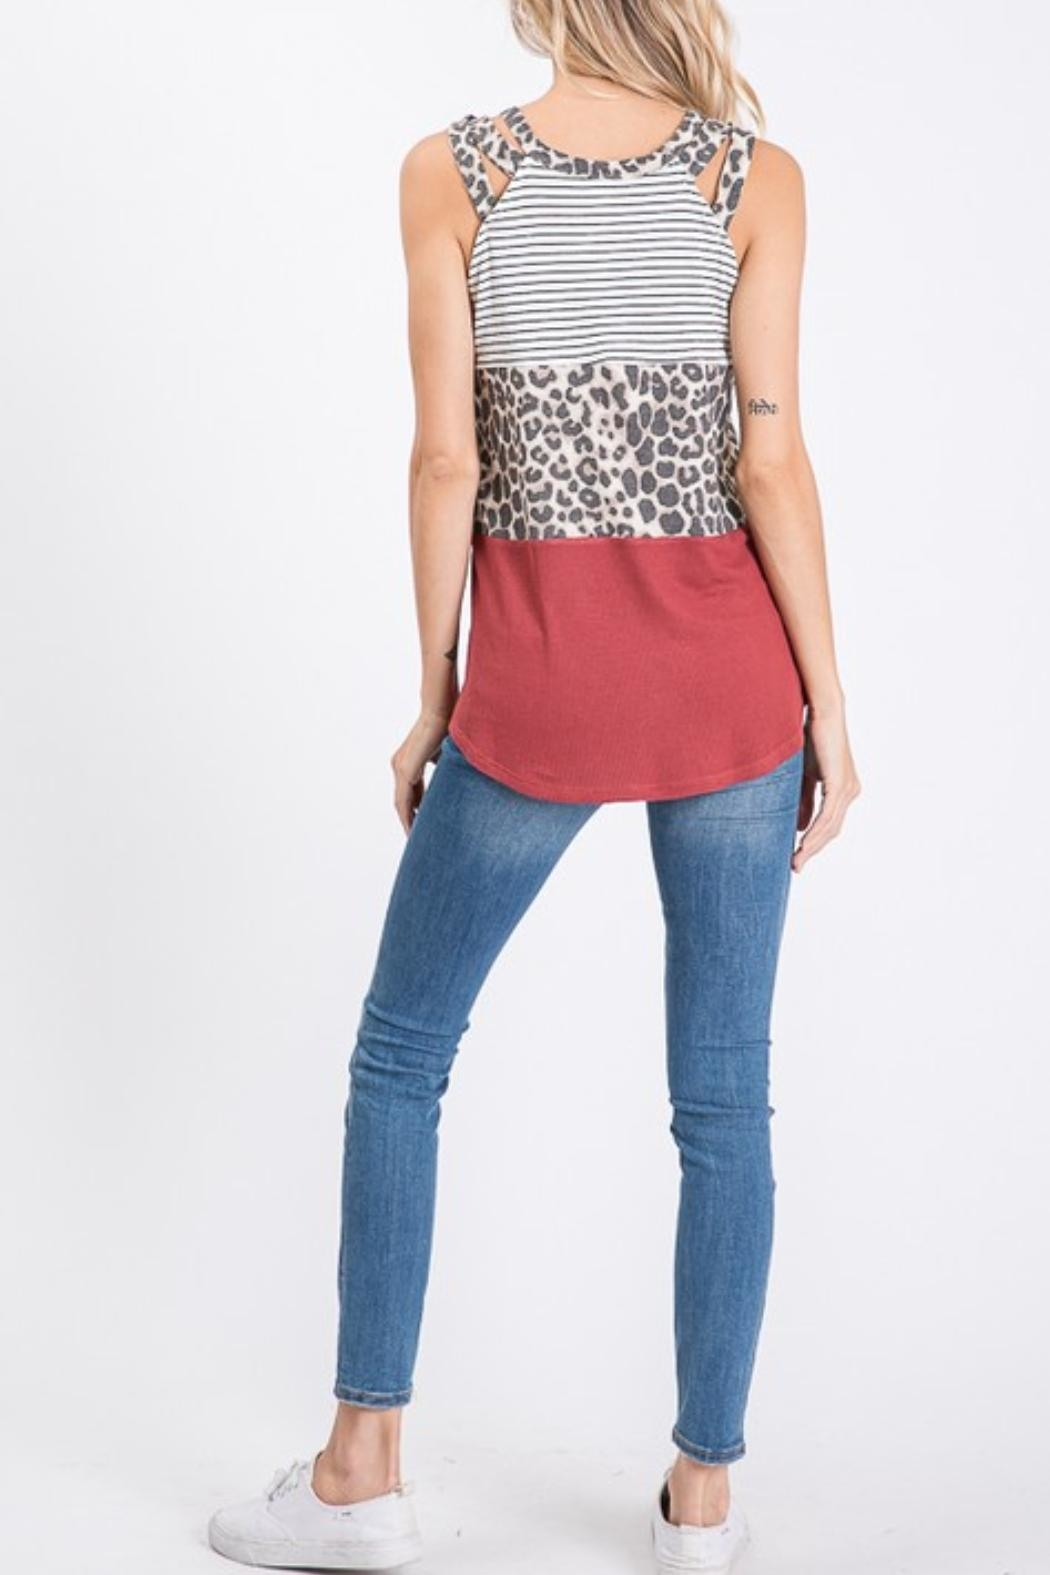 7th Ray Block Tank Top - Front Full Image